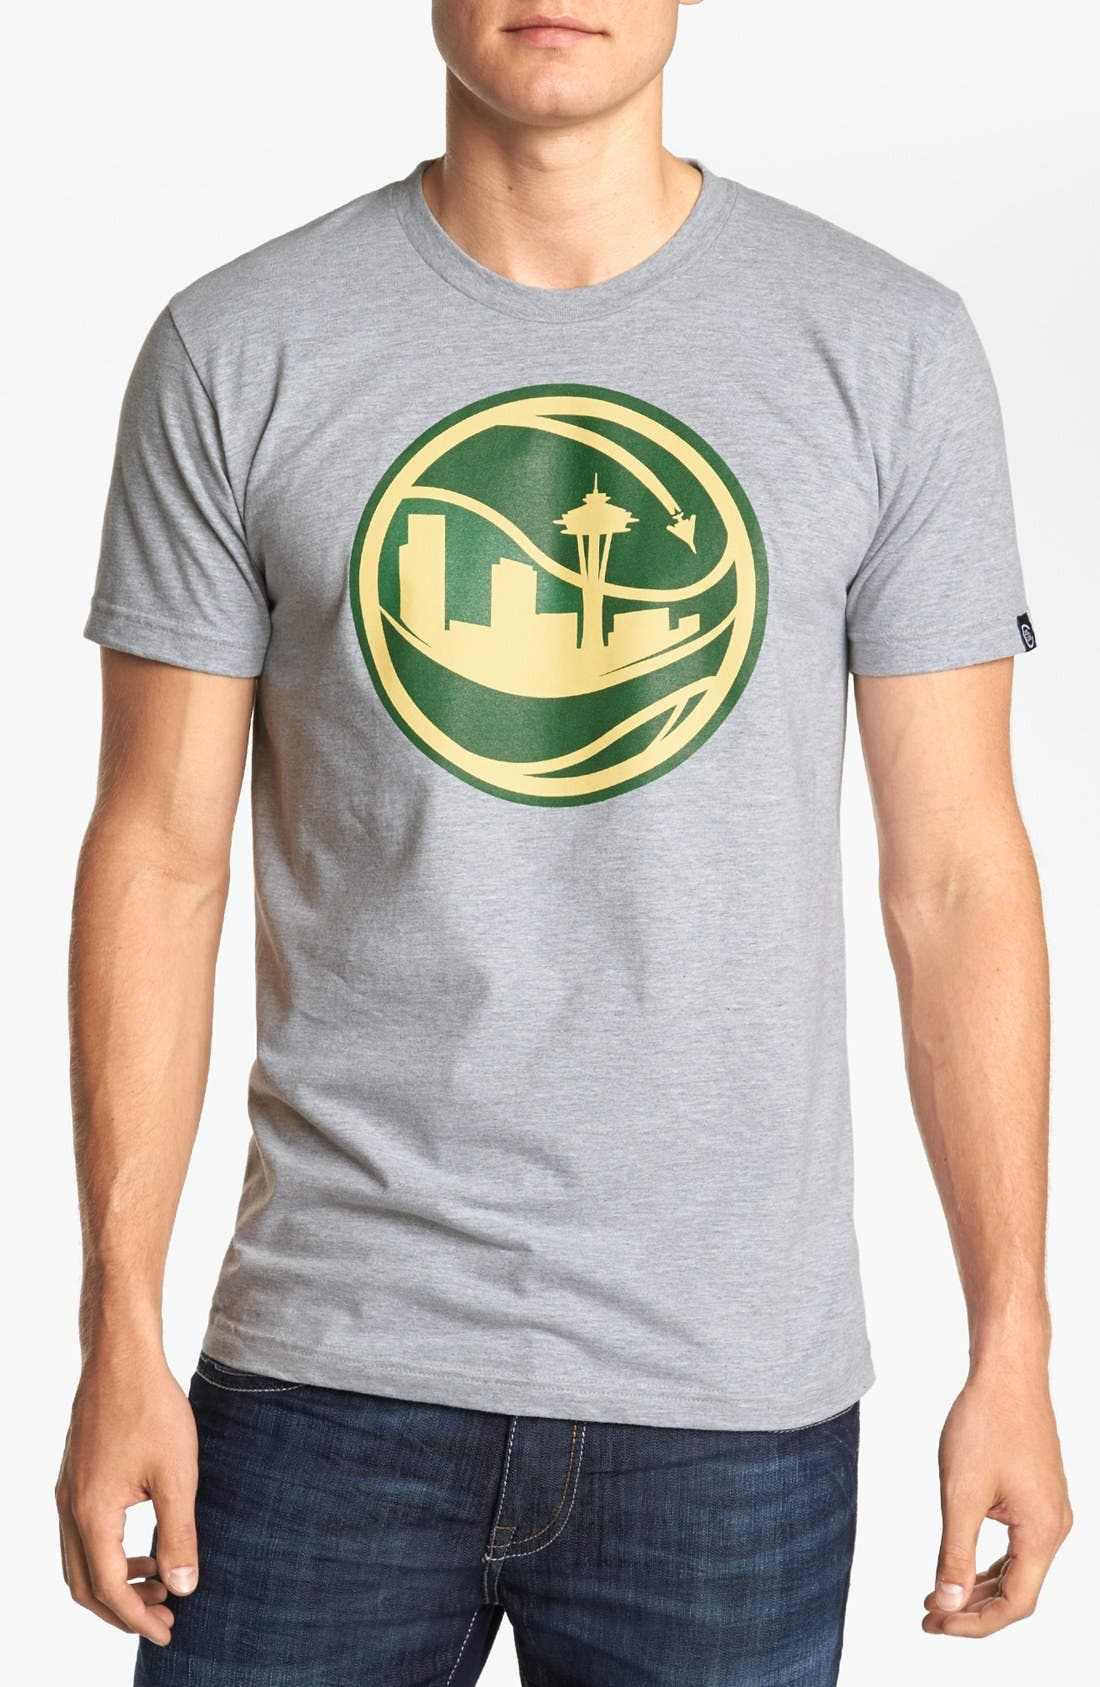 Alternate Image 1 Selected - Casual Industrees 'Skyball' T-Shirt